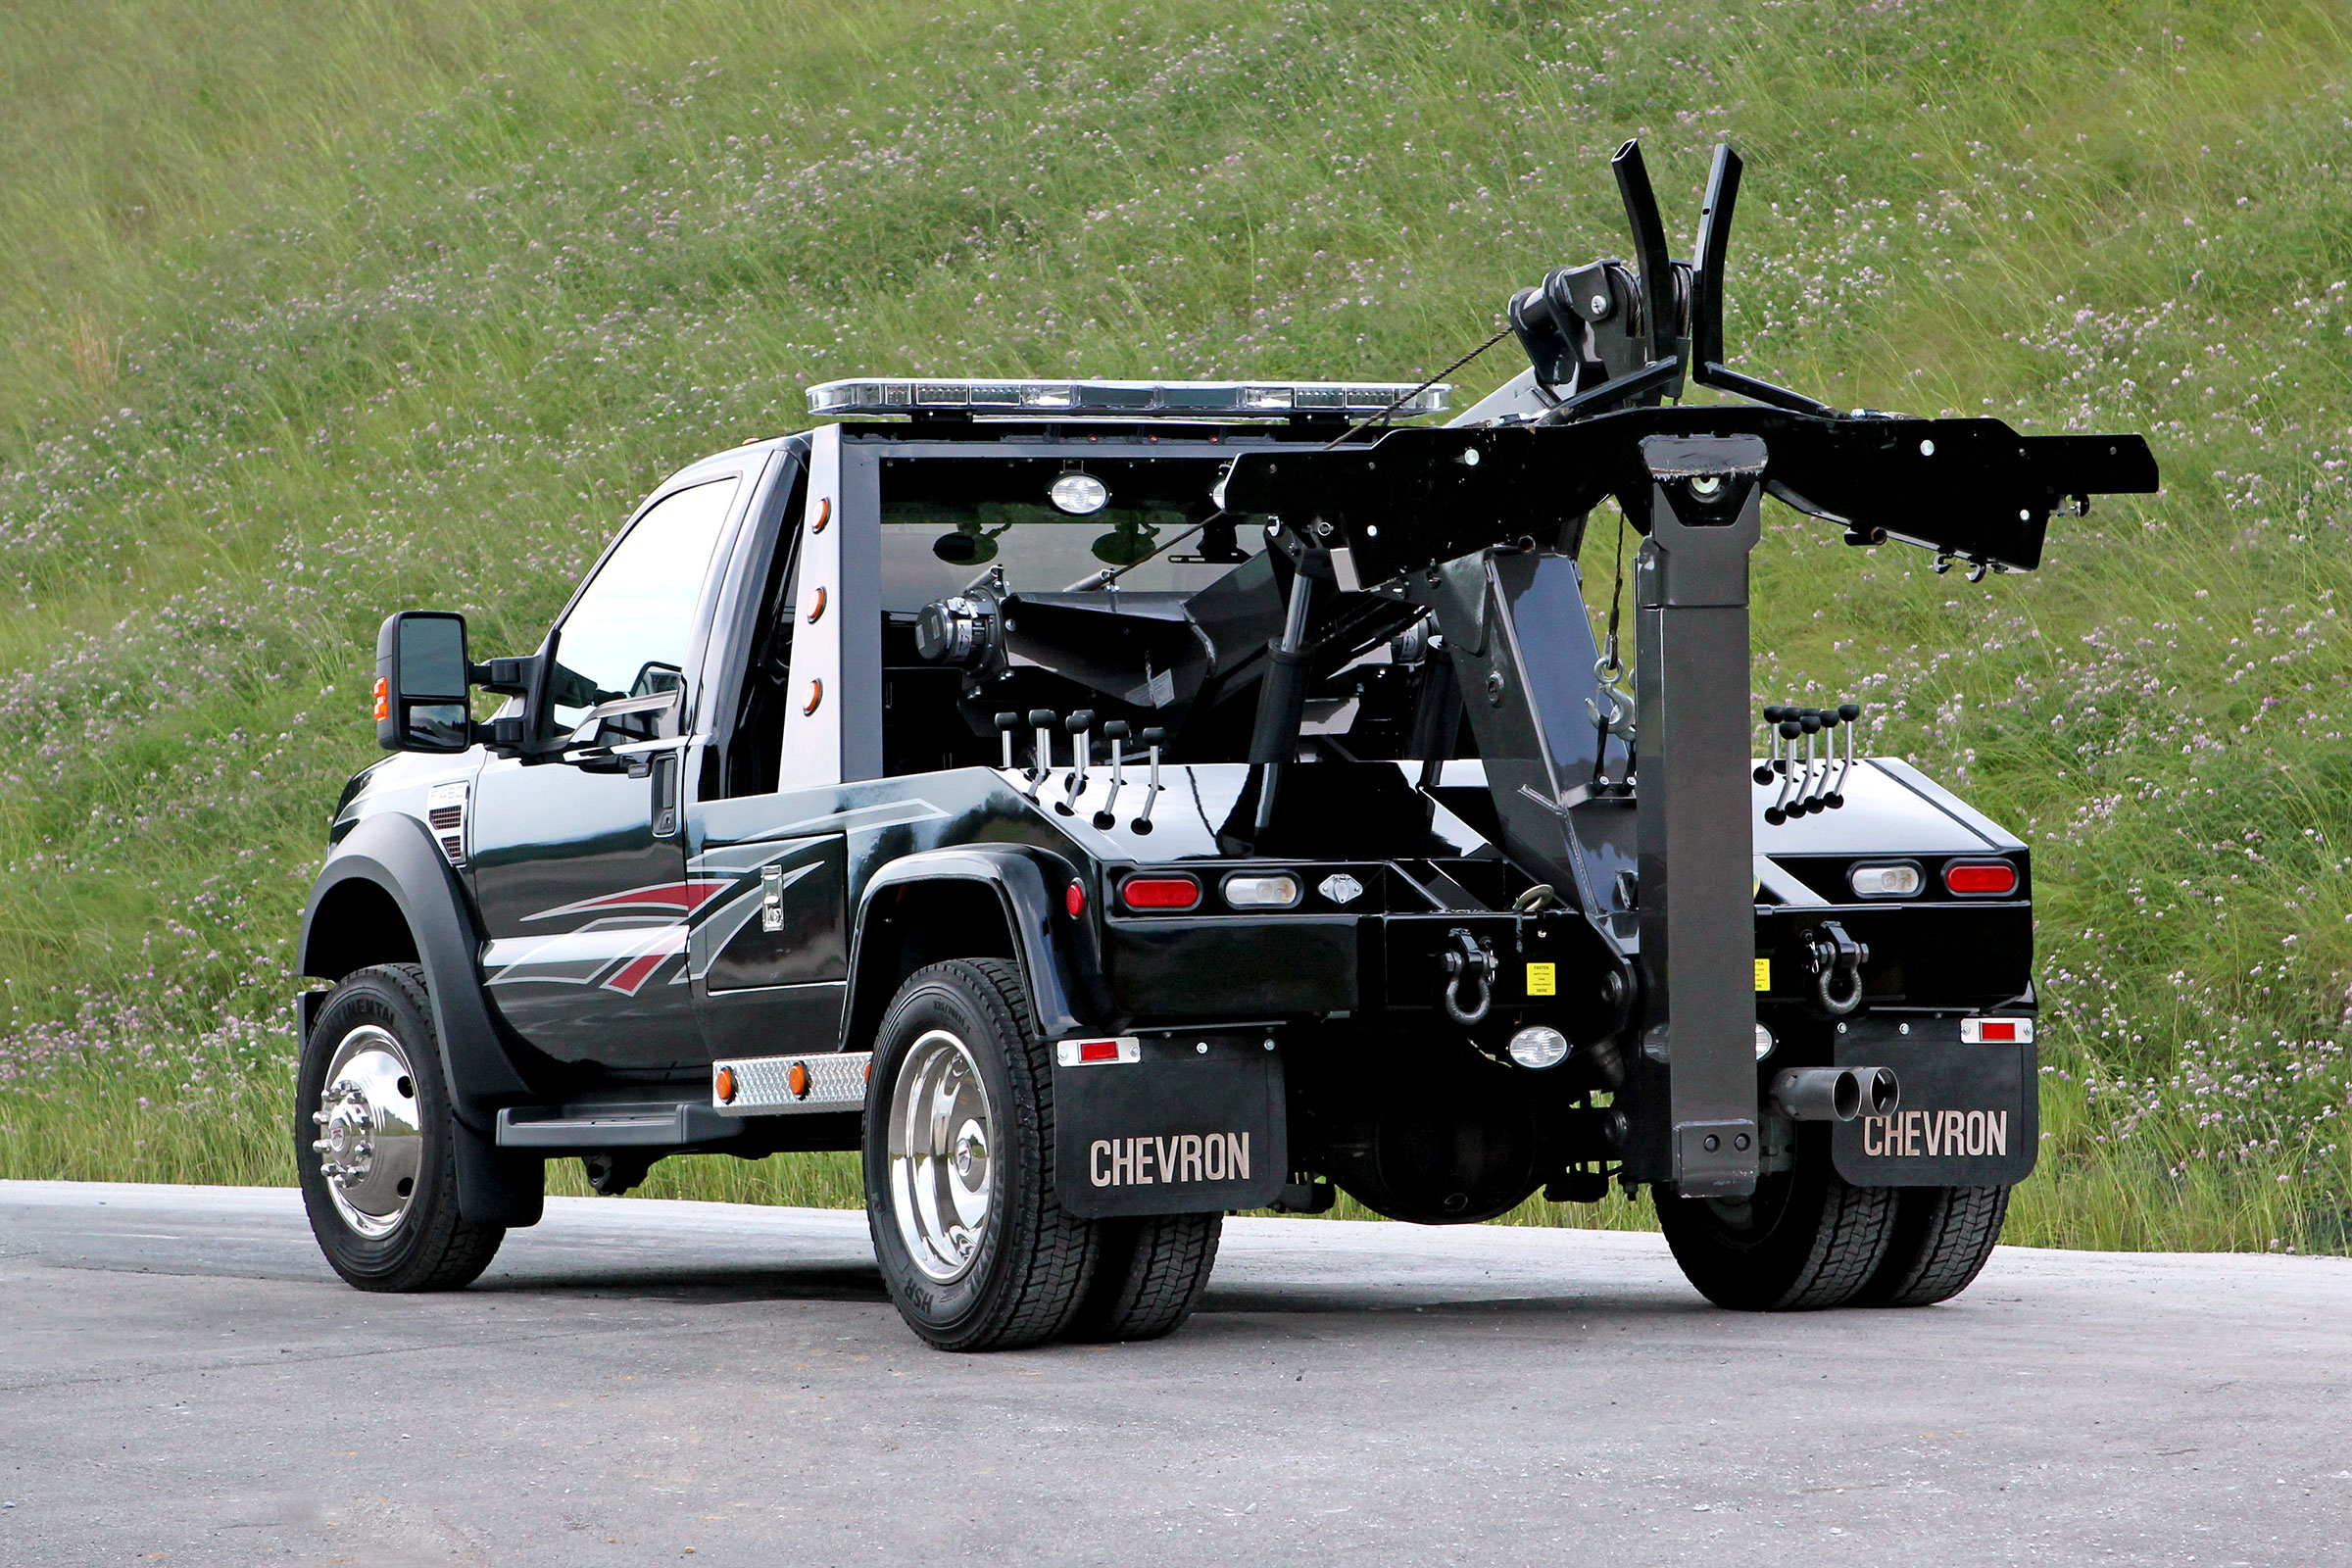 Chevron 408TA Small Wrecker